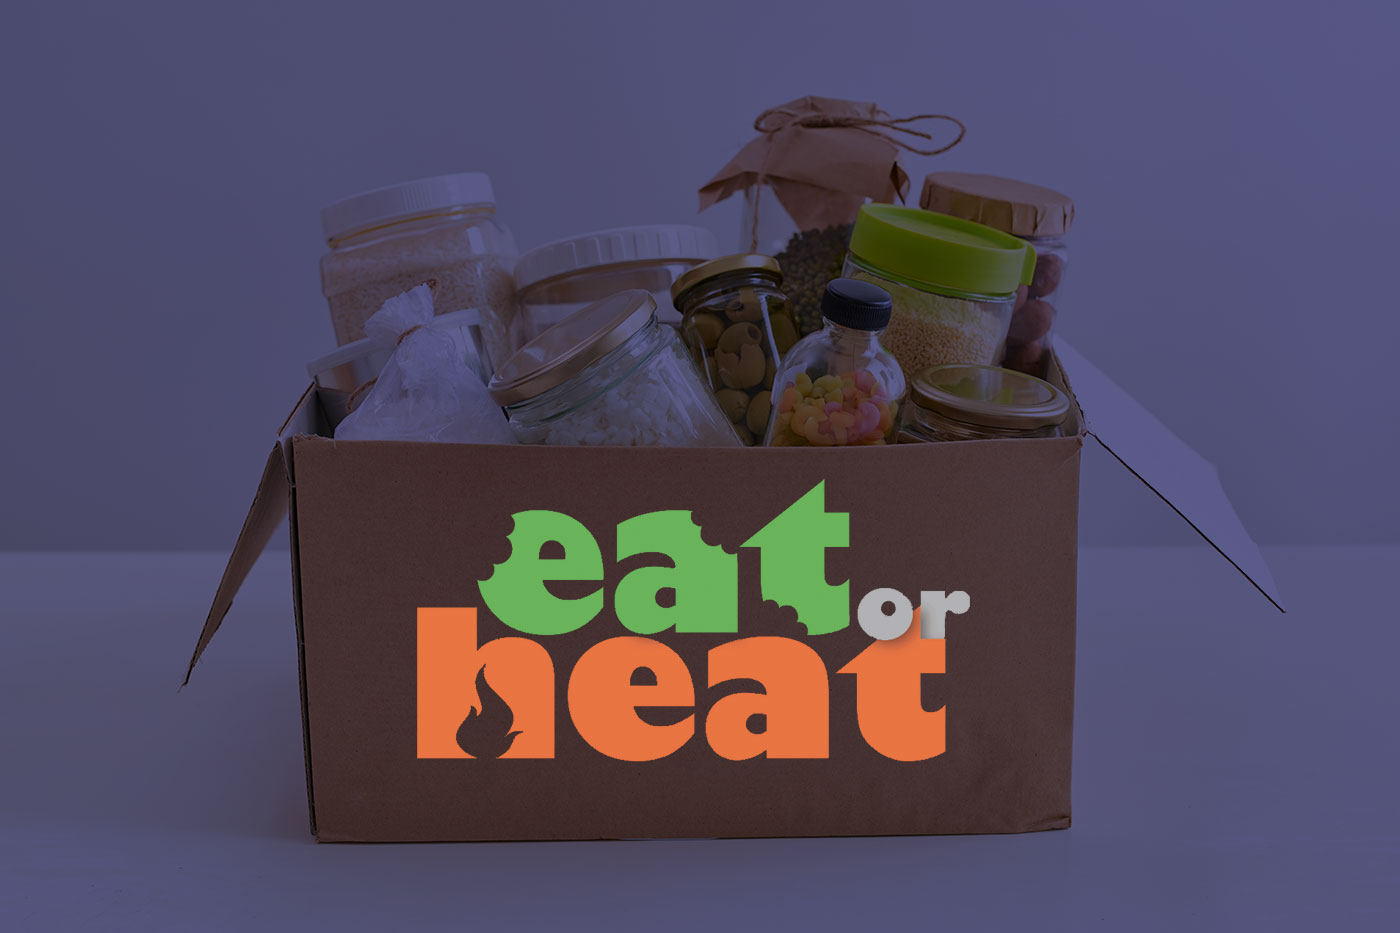 Eat or heat image